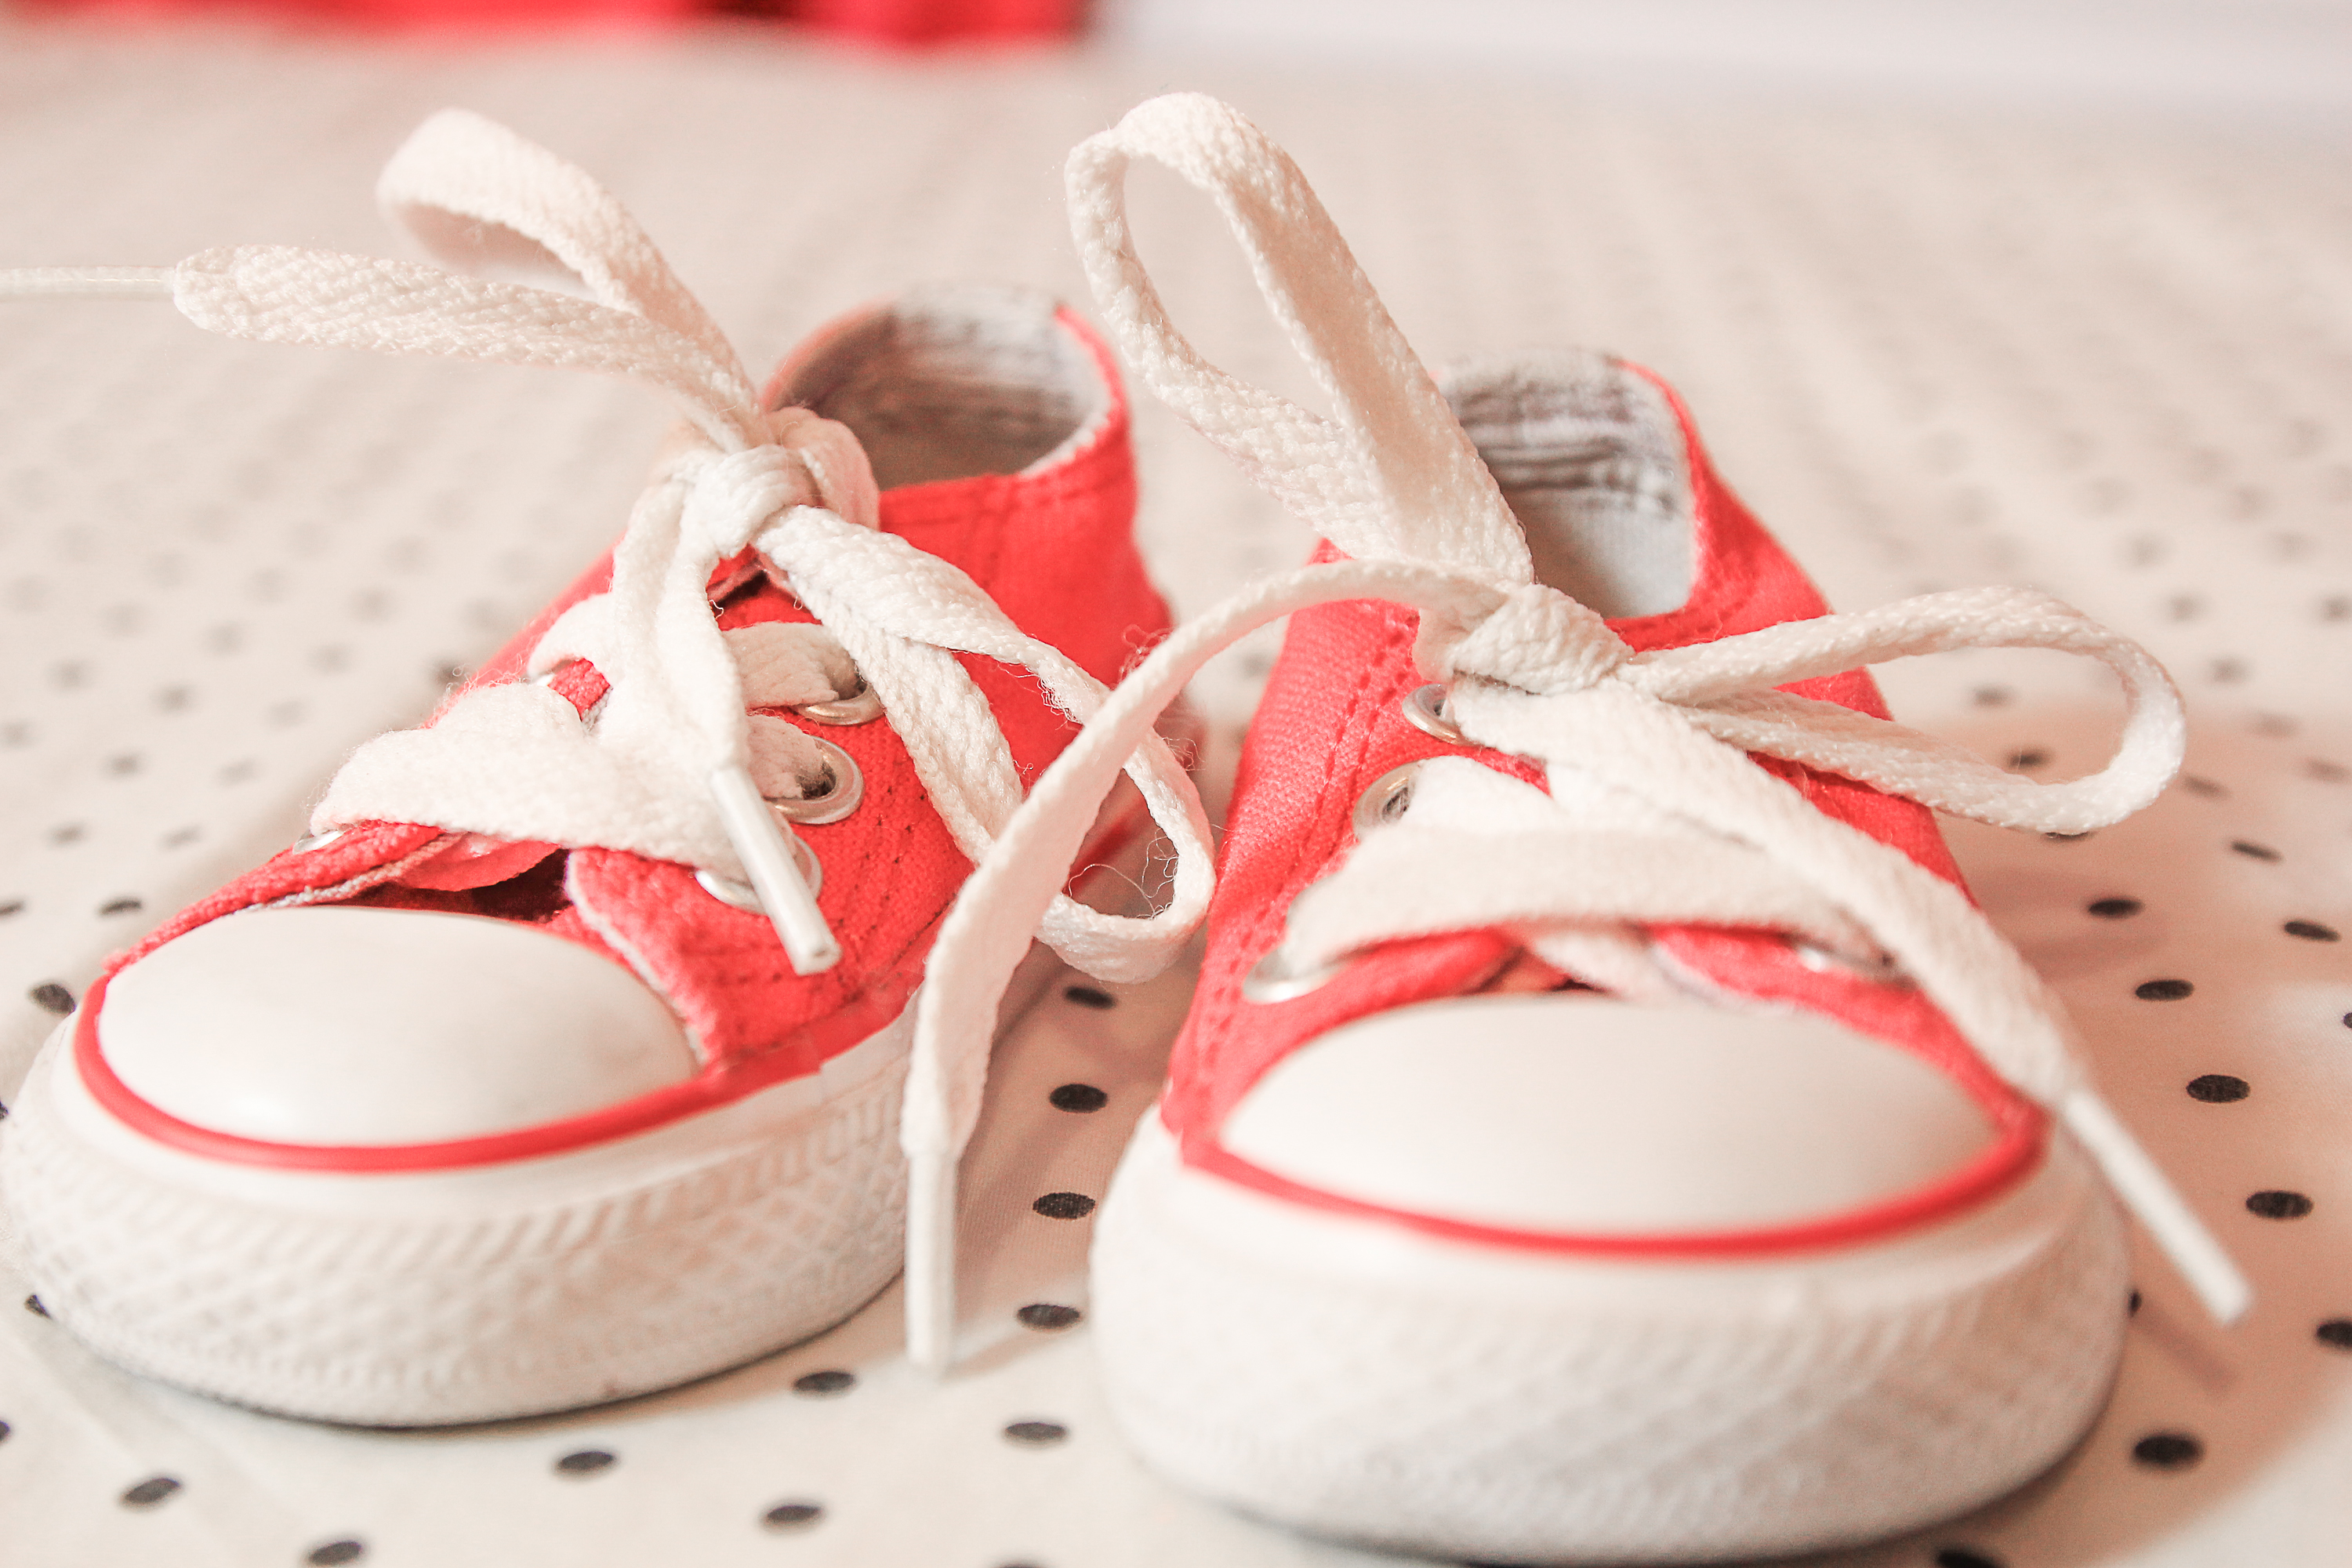 How To Tie Your Shoes Step By Step For Kids